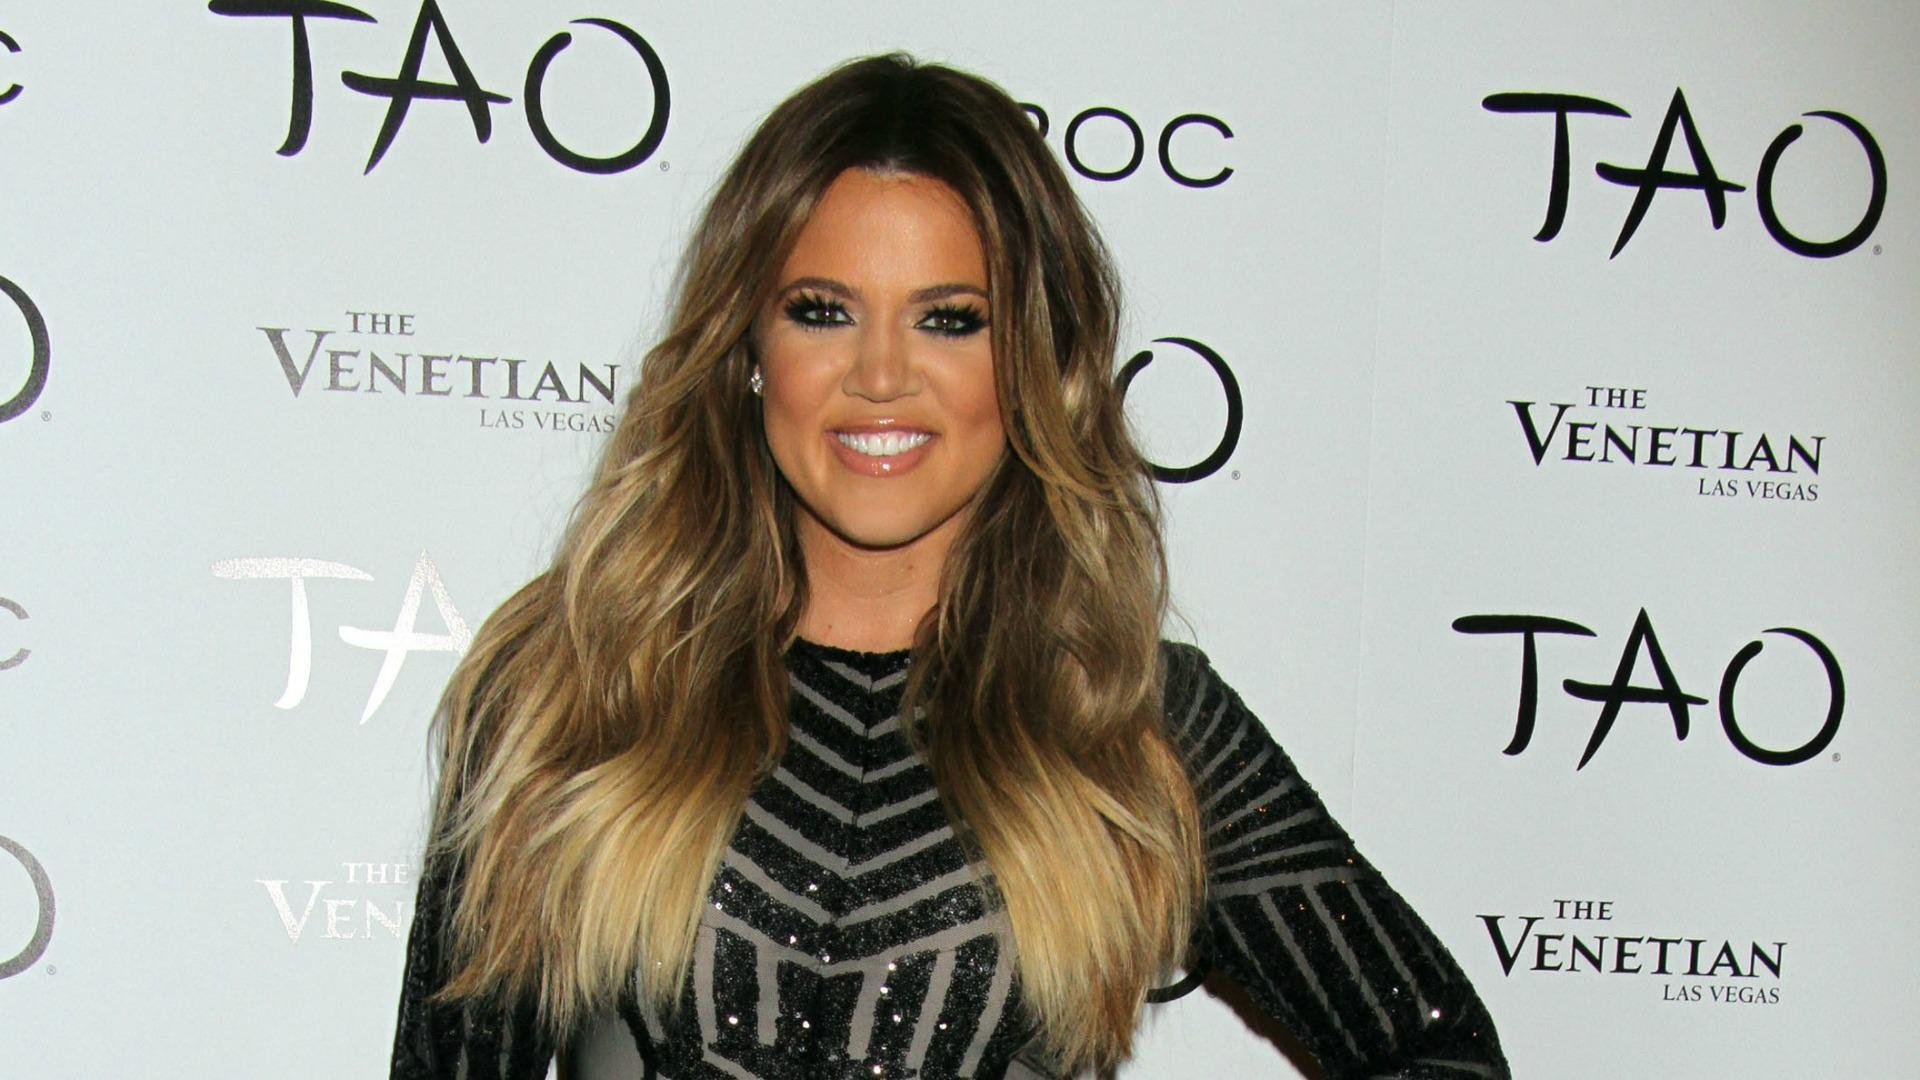 Khloe K defends brother Rob